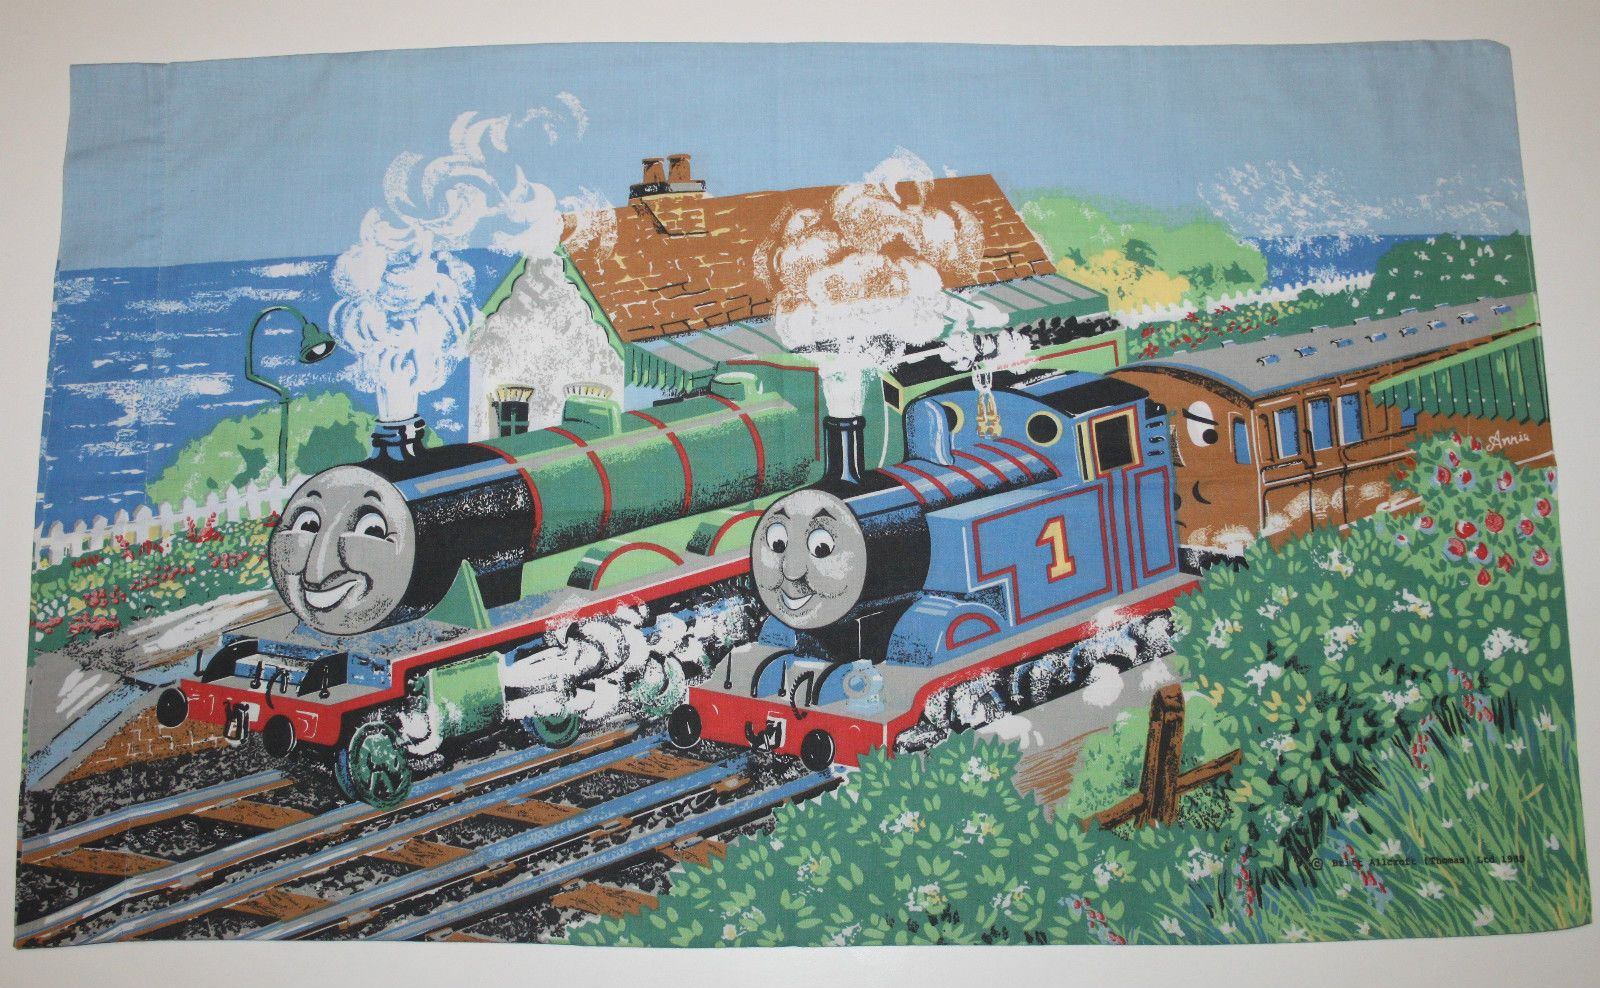 Thomas The Train Pillowcase Classy Vintage Britt Allcroft 1989 Thomas Train Tank Engine Duvet Cover Decorating Inspiration